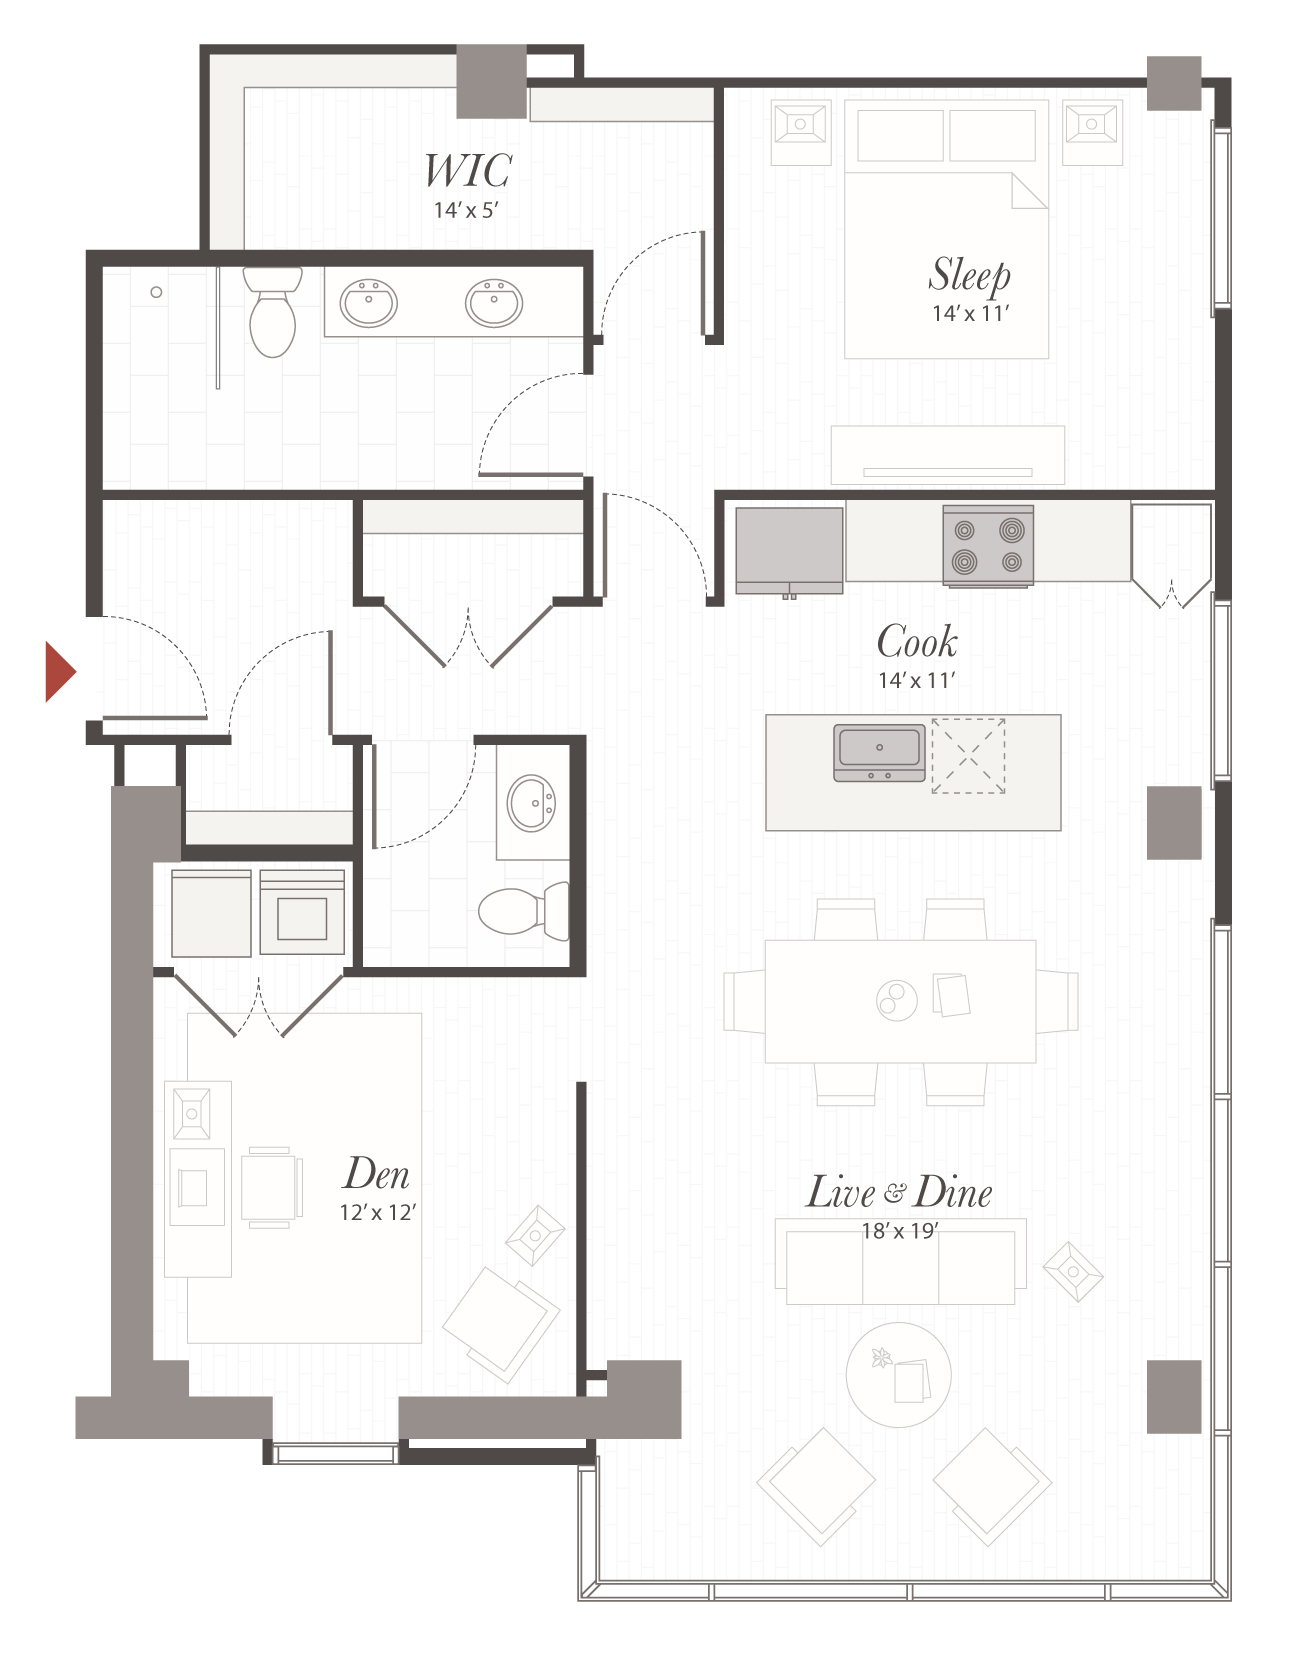 P11 floor plan 1 bedroom with den apartment cincinnati oh for Apartment floor plans 1 bedroom with den